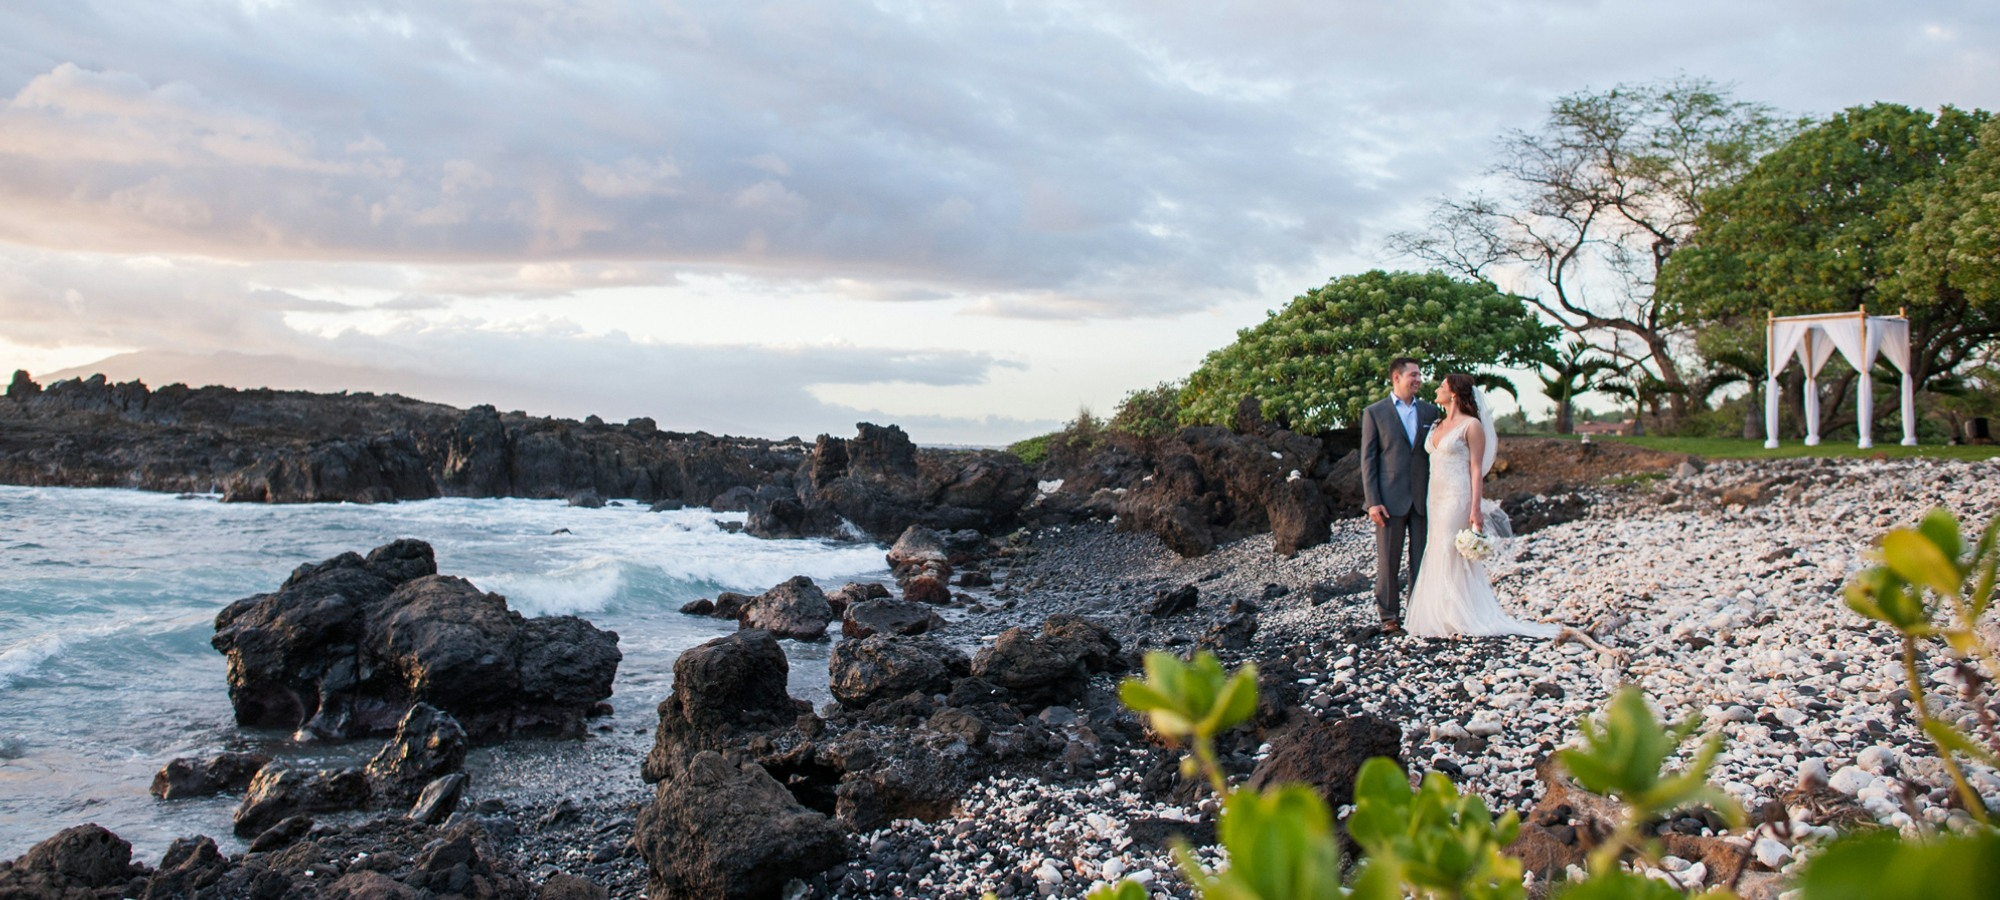 Kukahiko Weddings and Events Venue